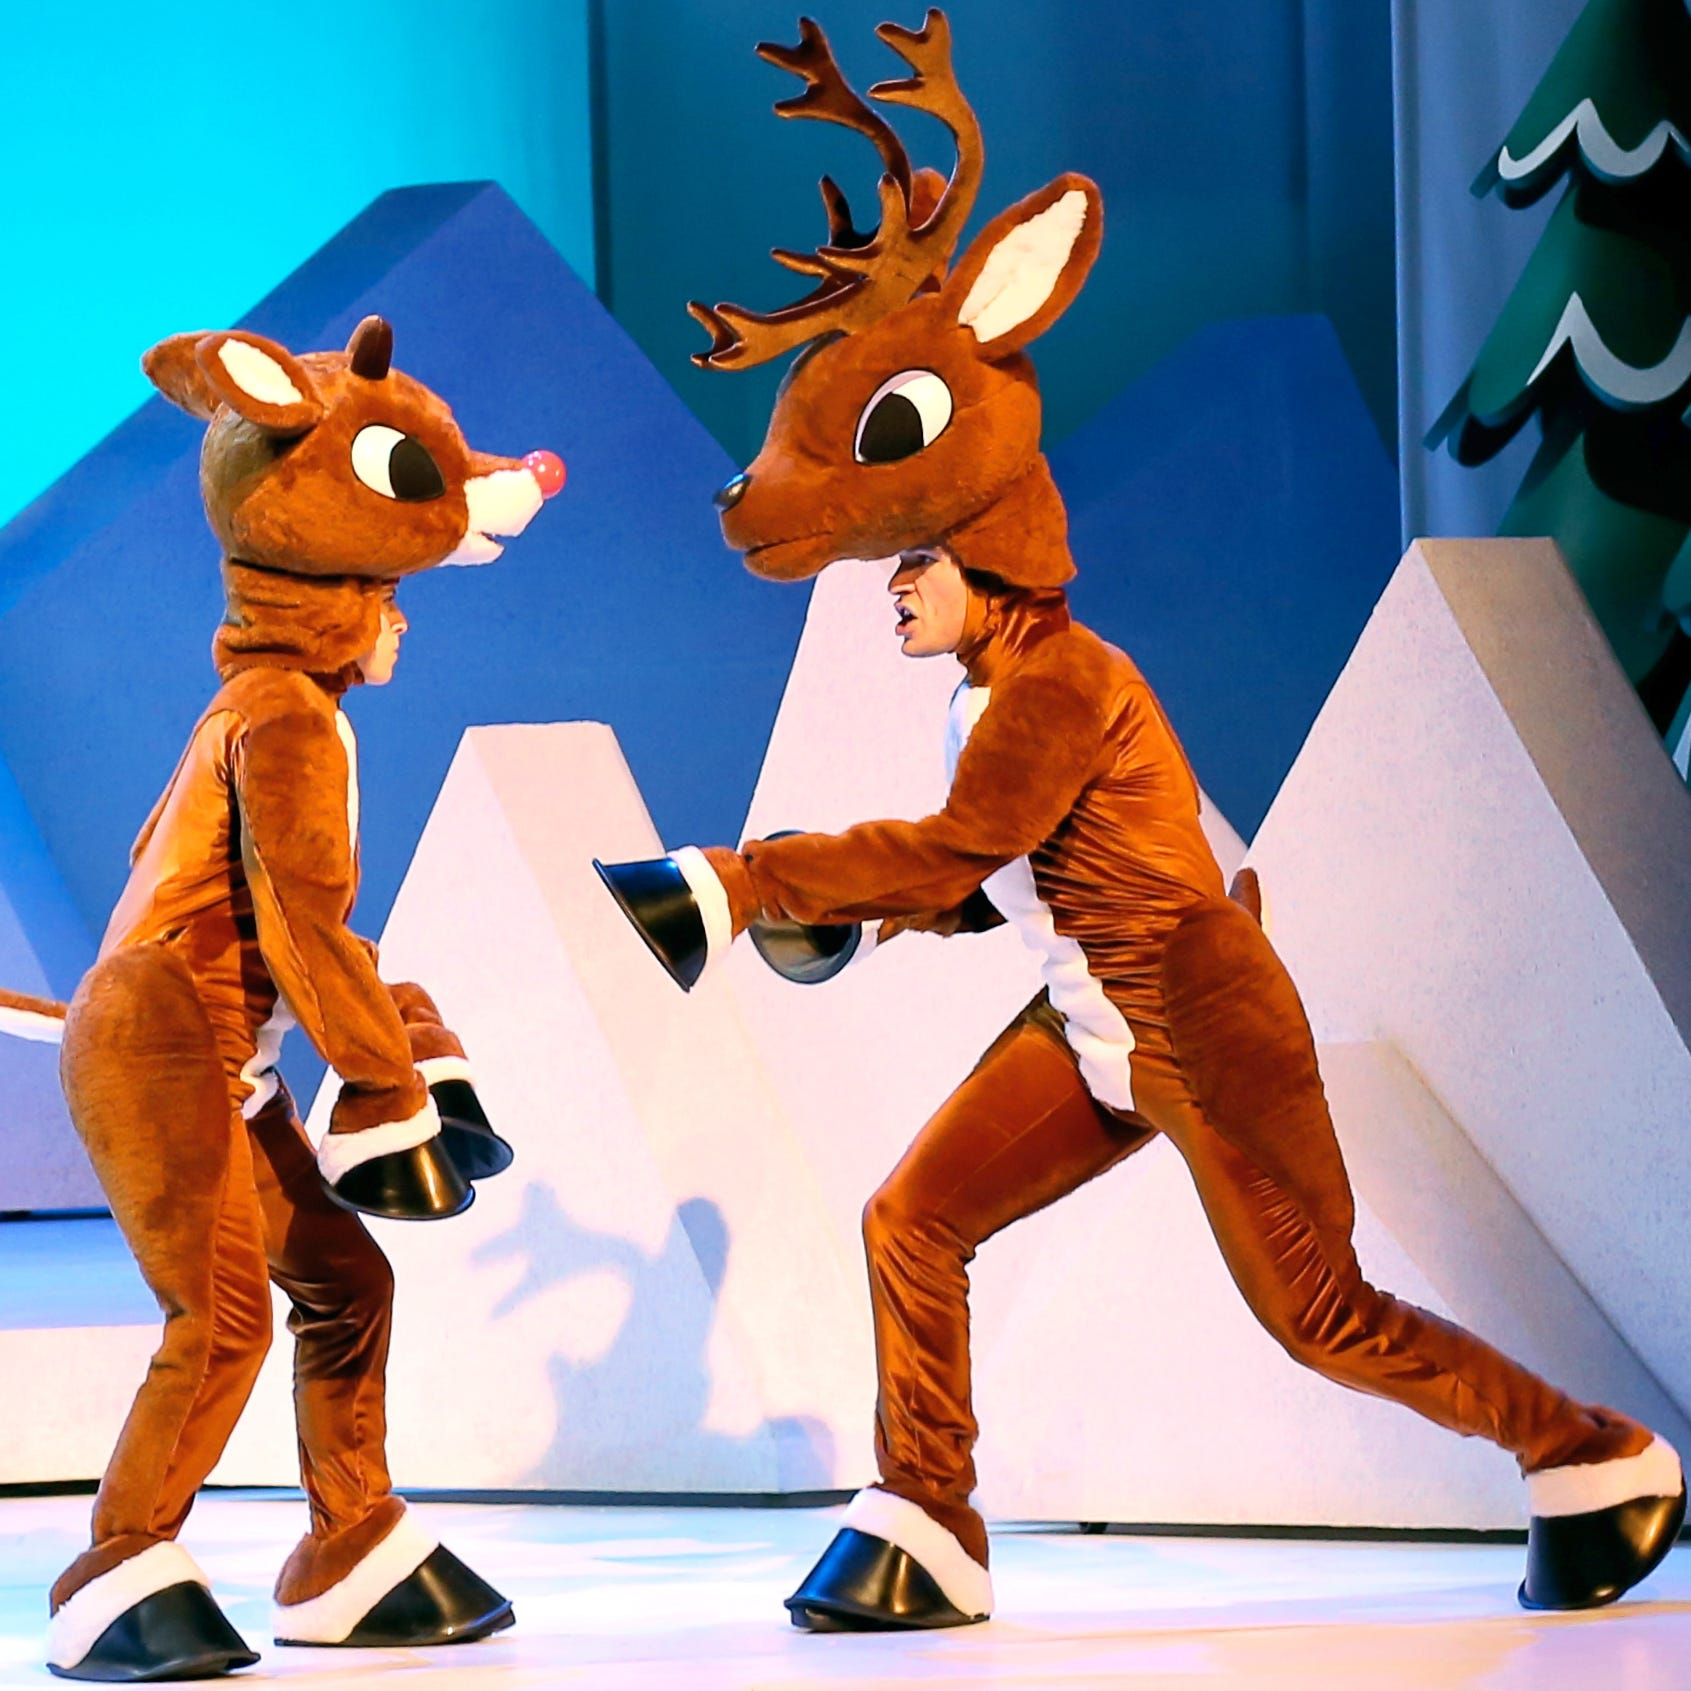 Rudolph the Red-Nosed Reindeer lights the way at Hertz Arena in musical based on TV special